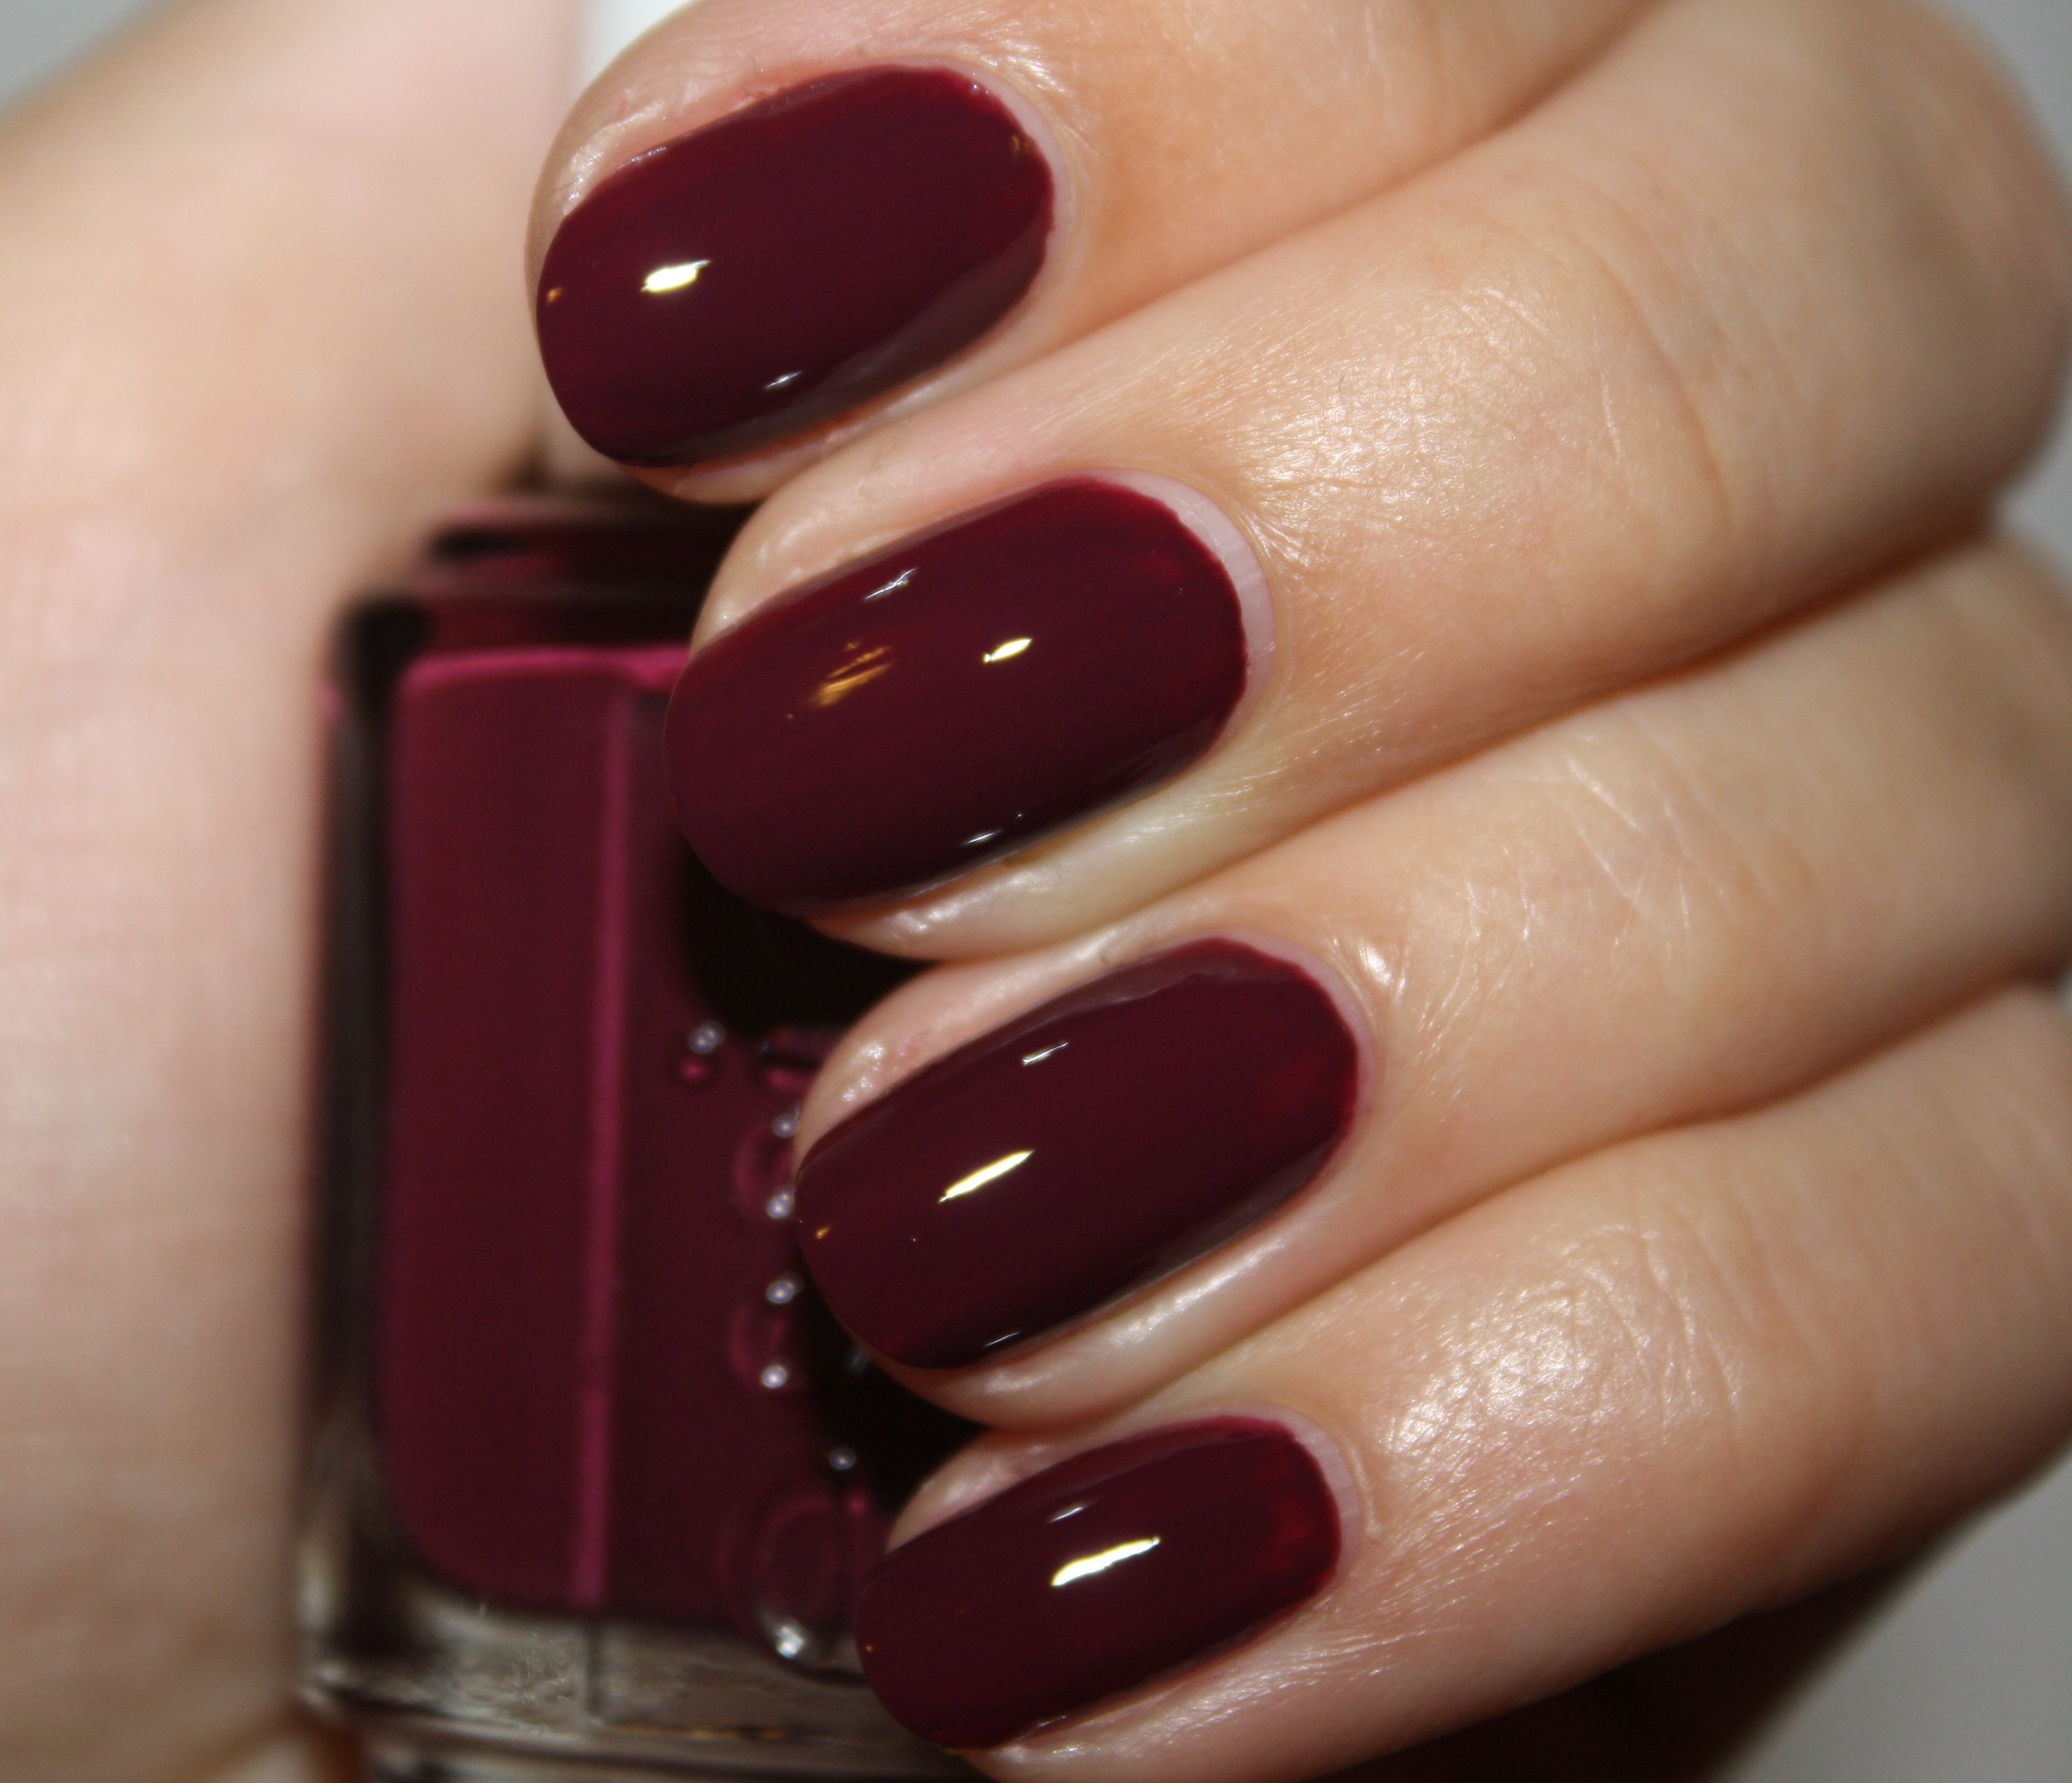 ESSIE - Recessionista | Nails and the like | Pinterest | Esmalte ...